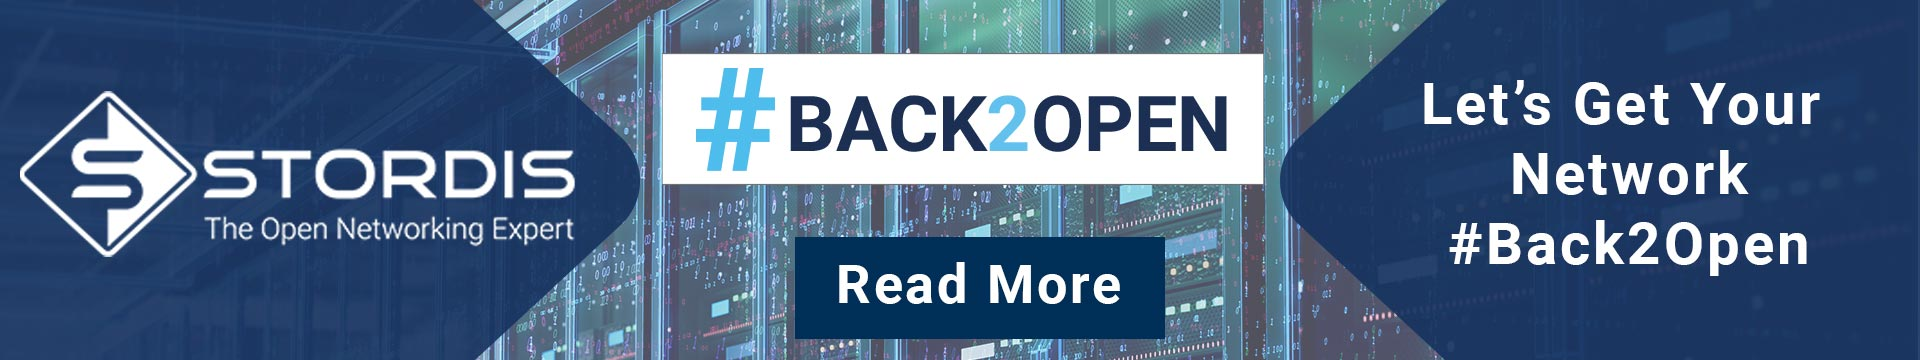 Back2Open: Let's Get Your Network #Back2Open